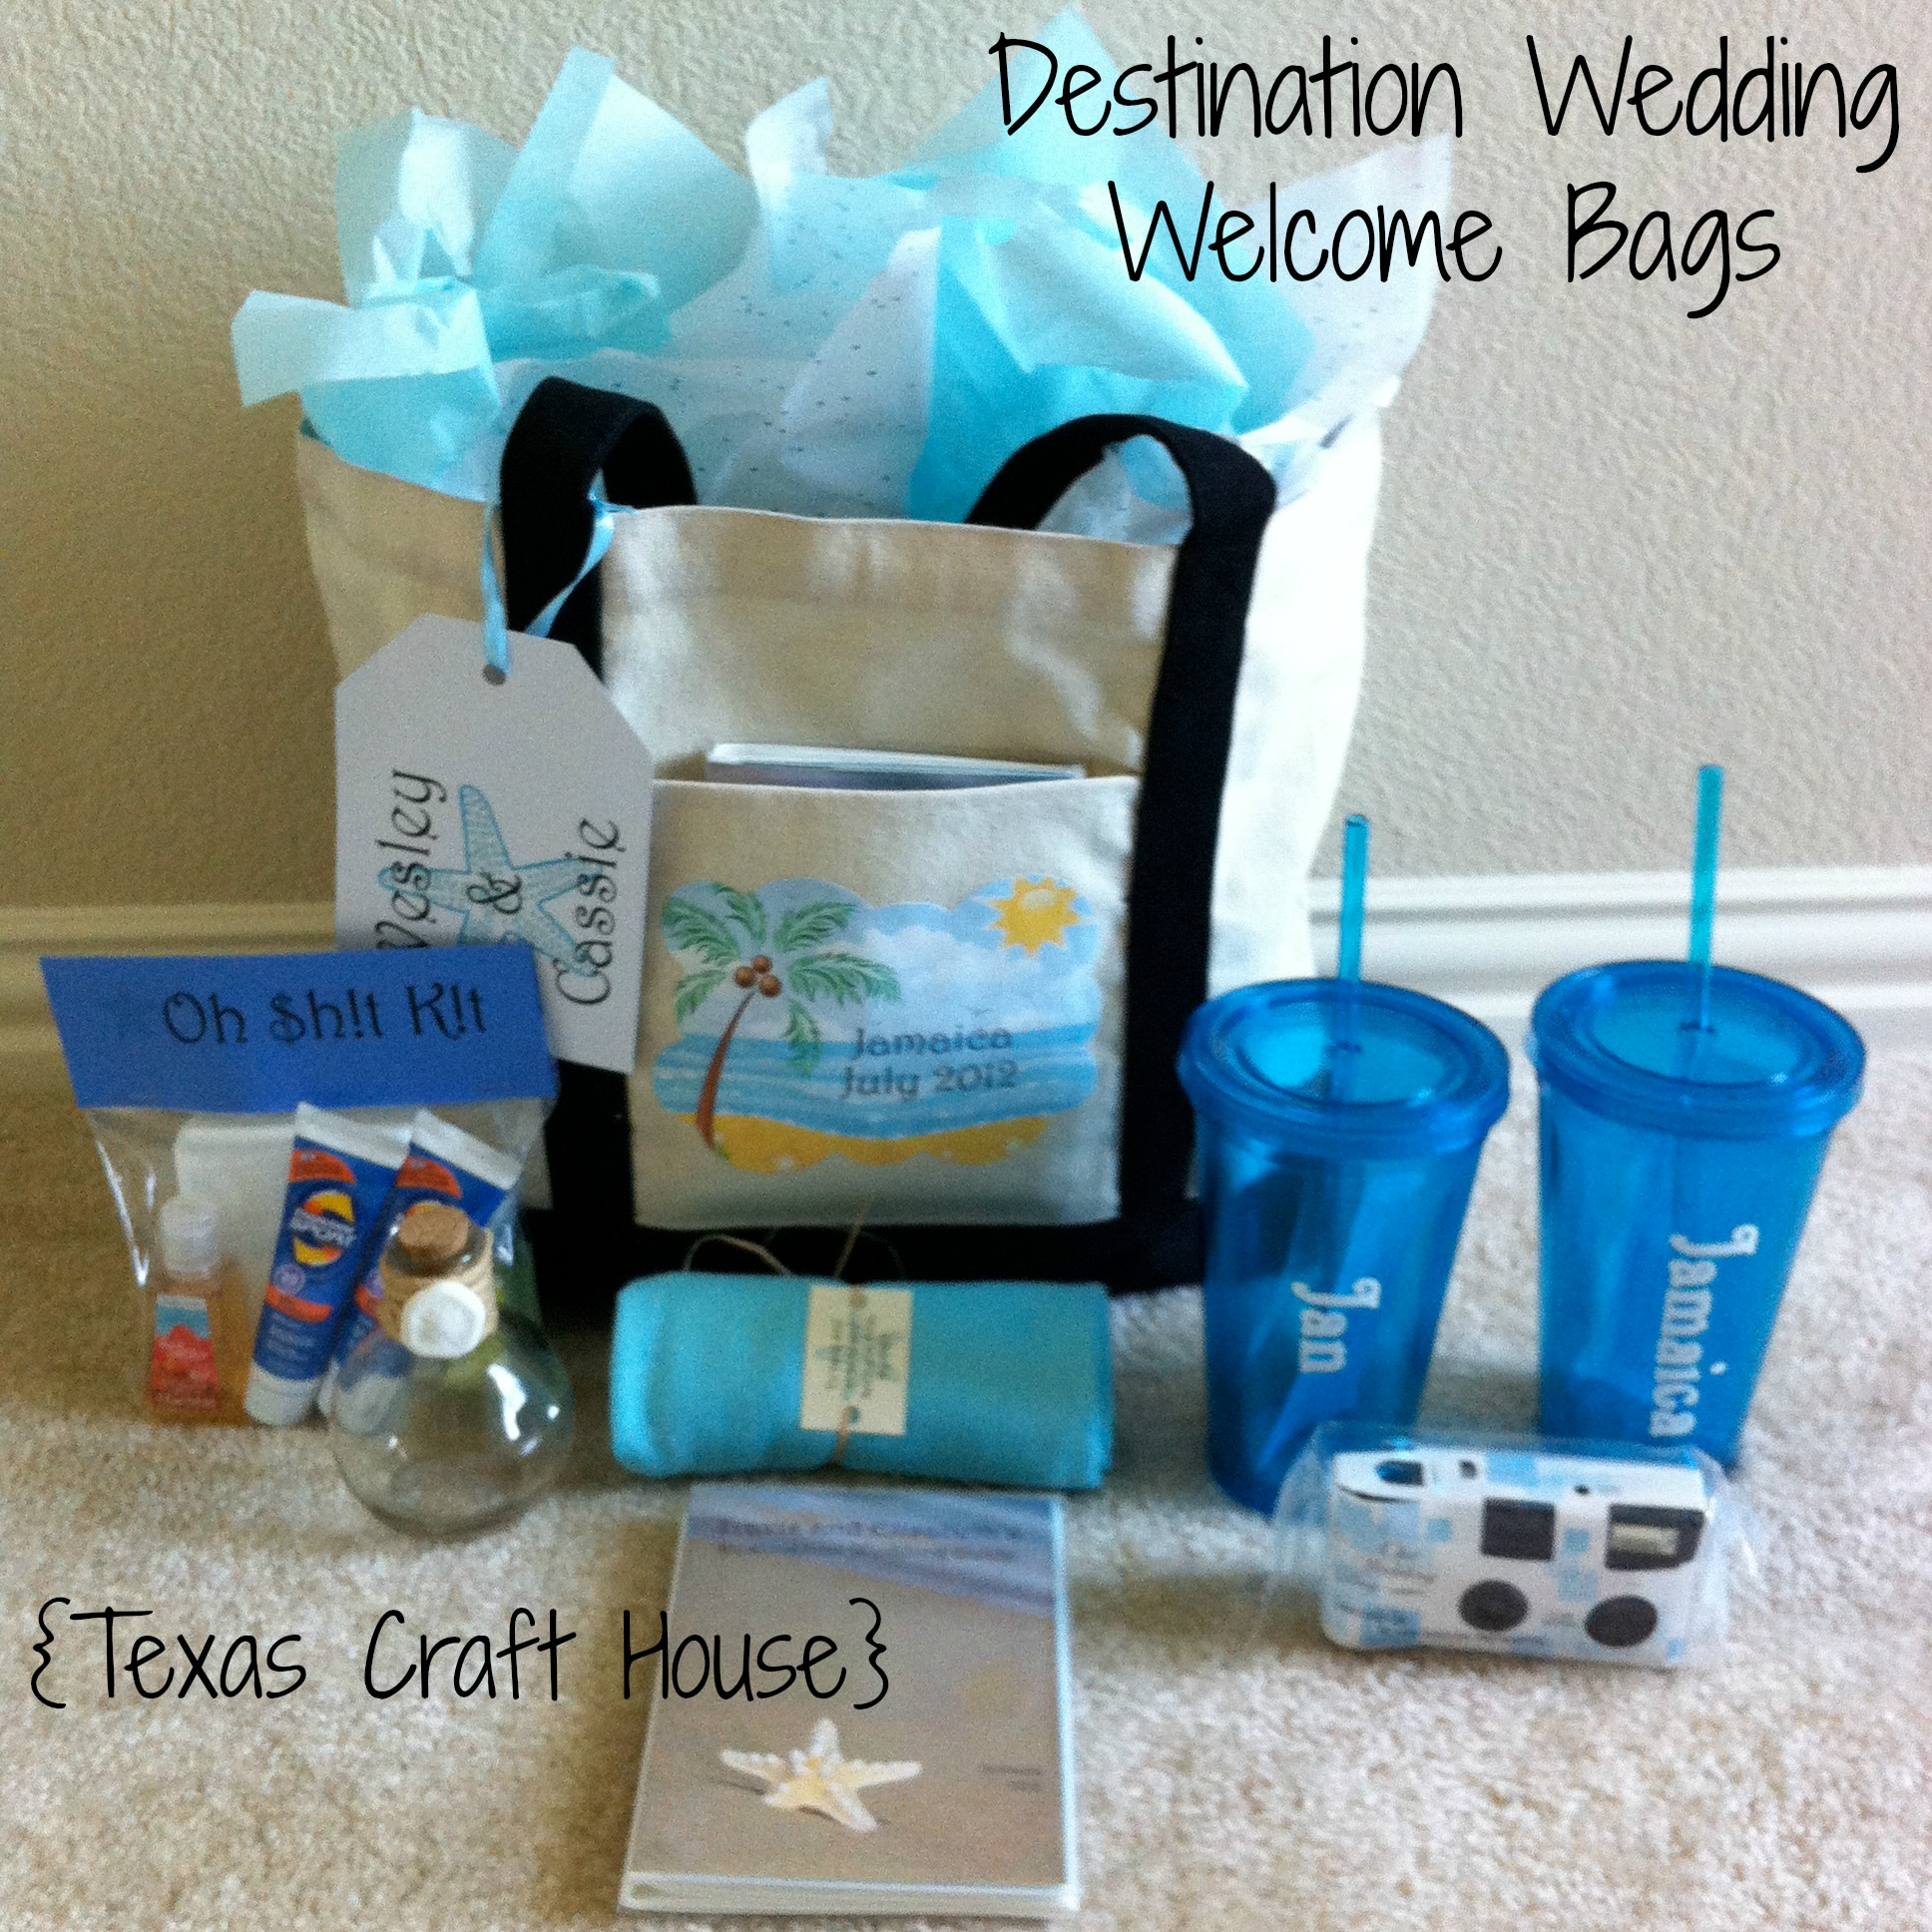 Destination wedding welcome bags diy texas craft house texas craft house destination wedding welcome bags junglespirit Image collections